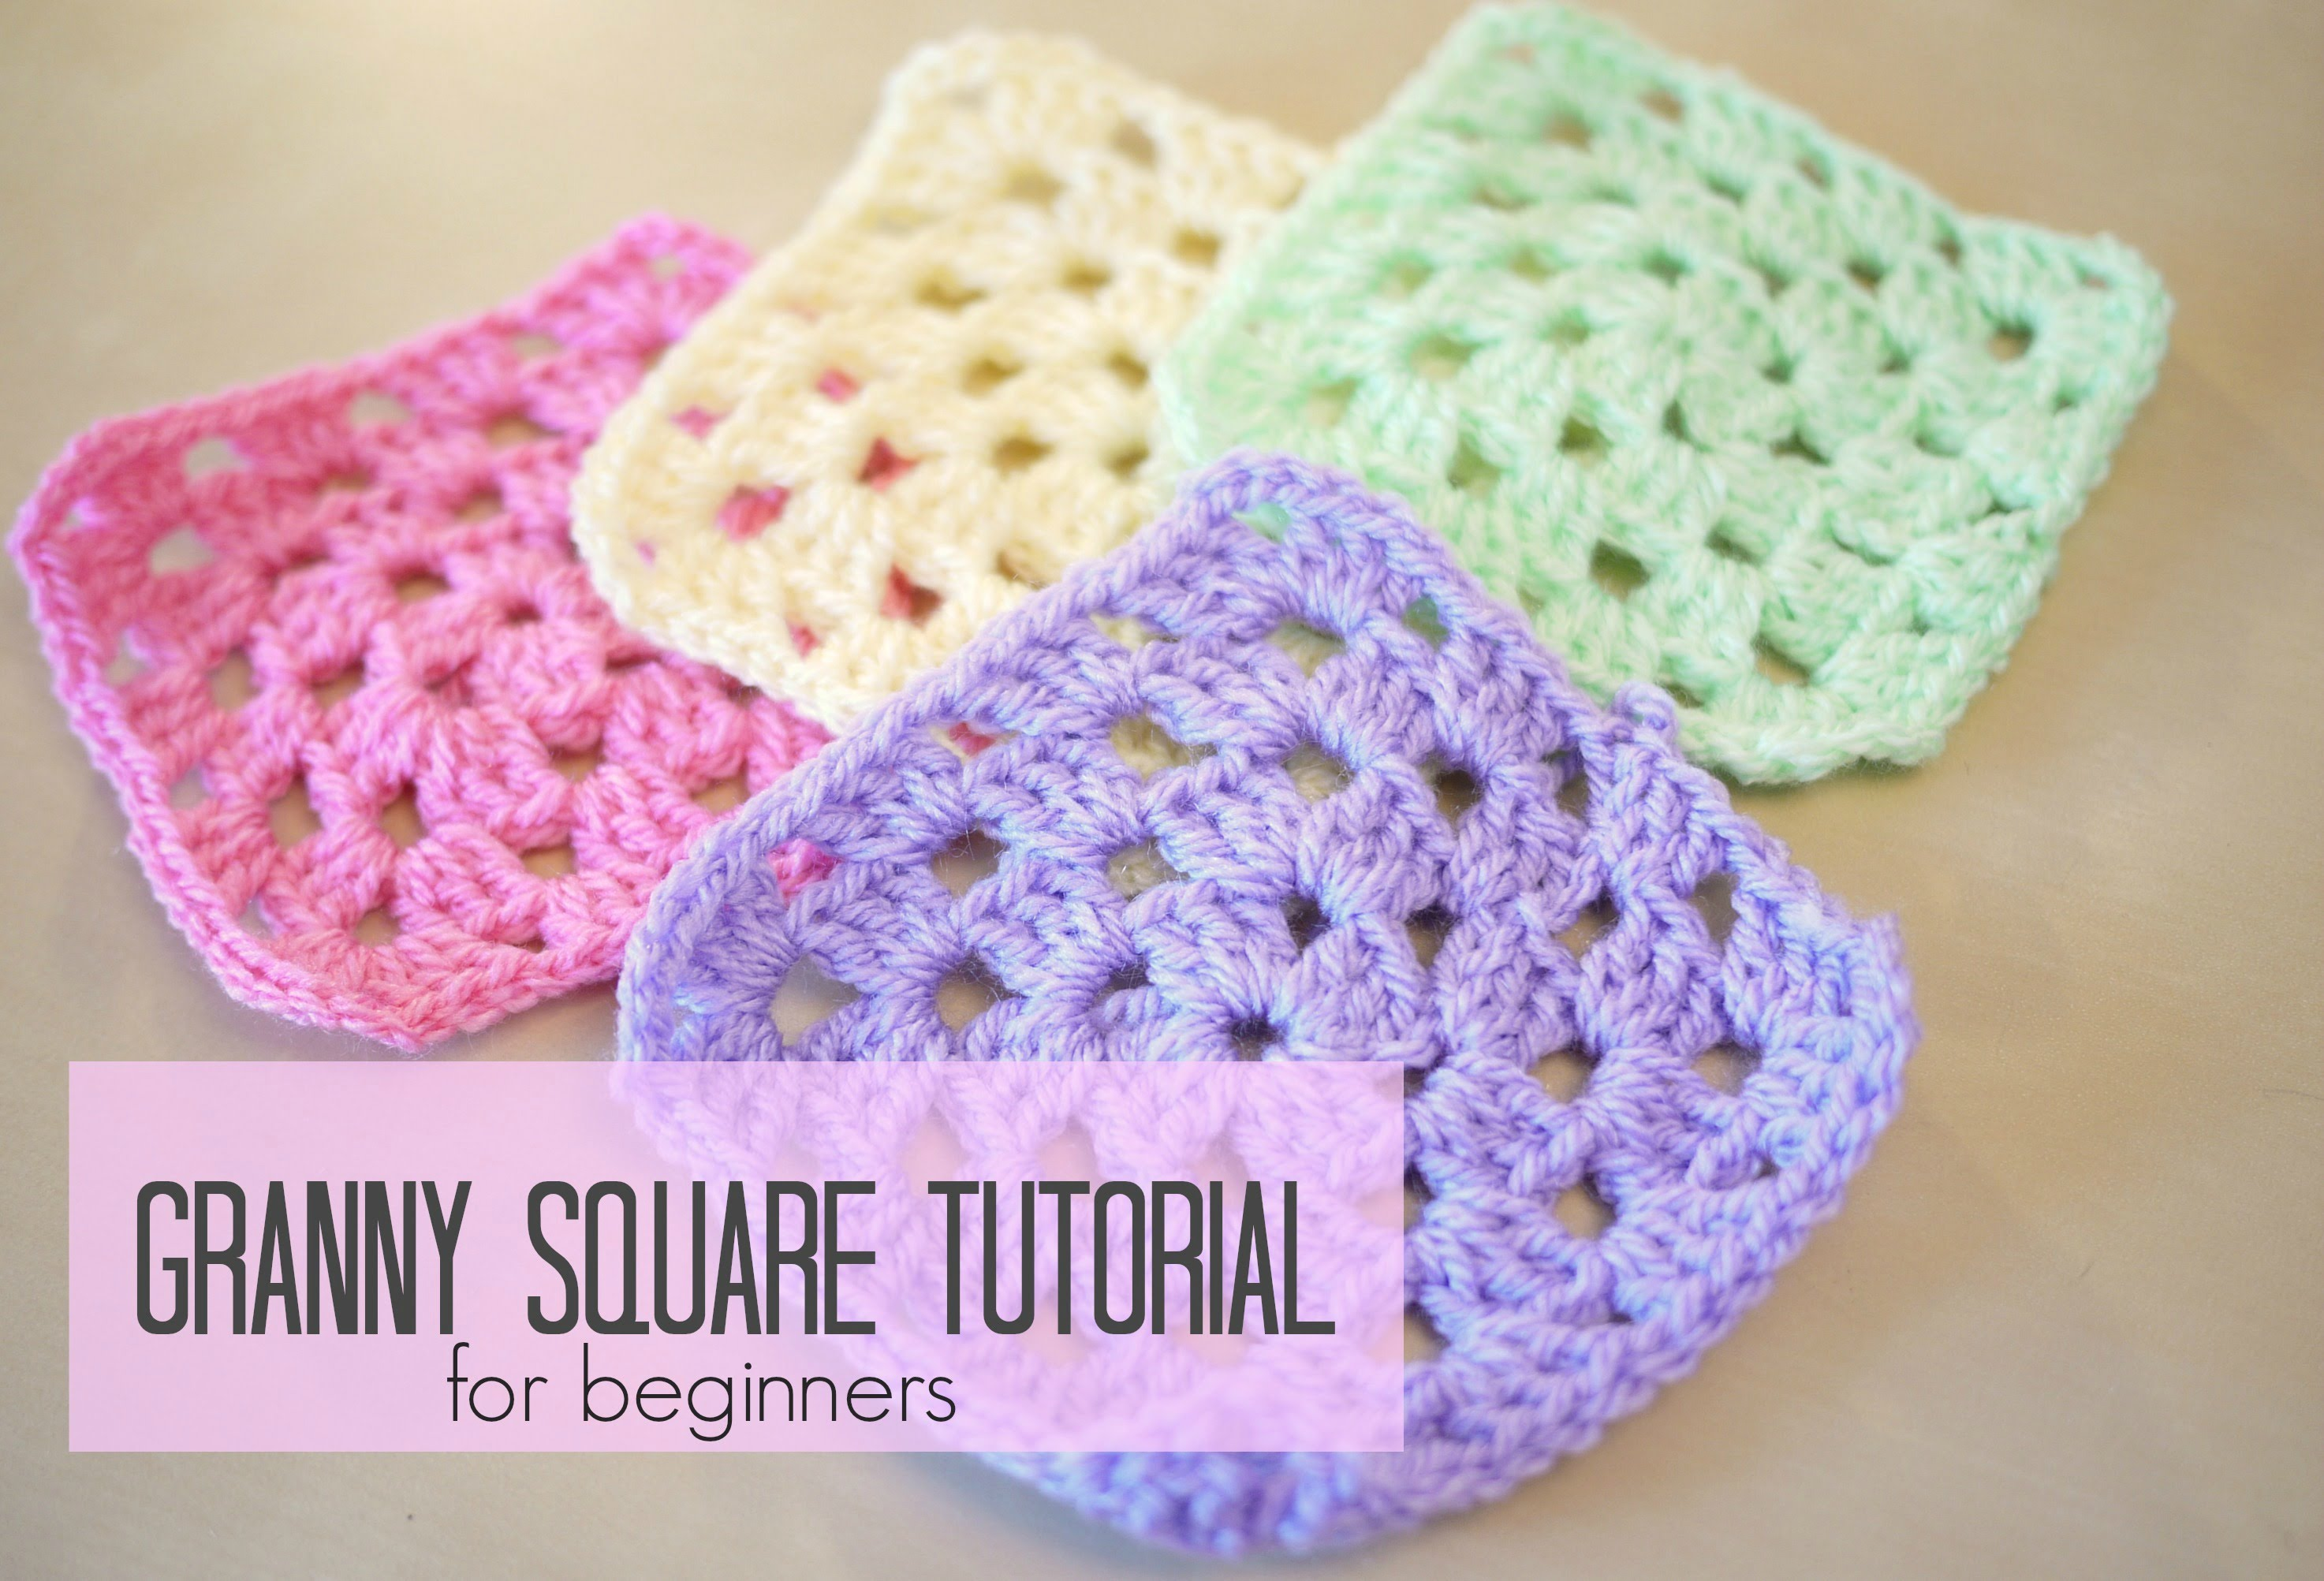 Crocheting Grandma : ... ] Granny Square For Beginners Step-By-Step - Knit And Crochet Daily